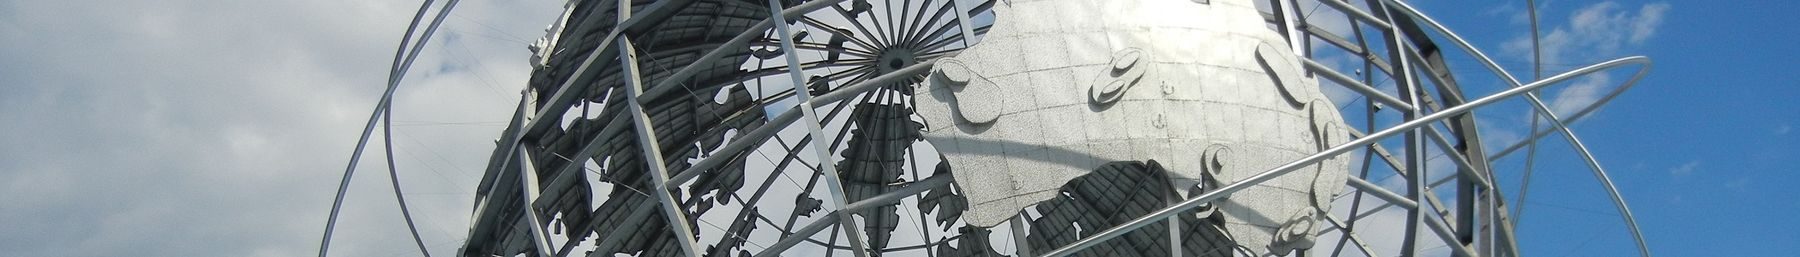 The Unisphere, Flushing